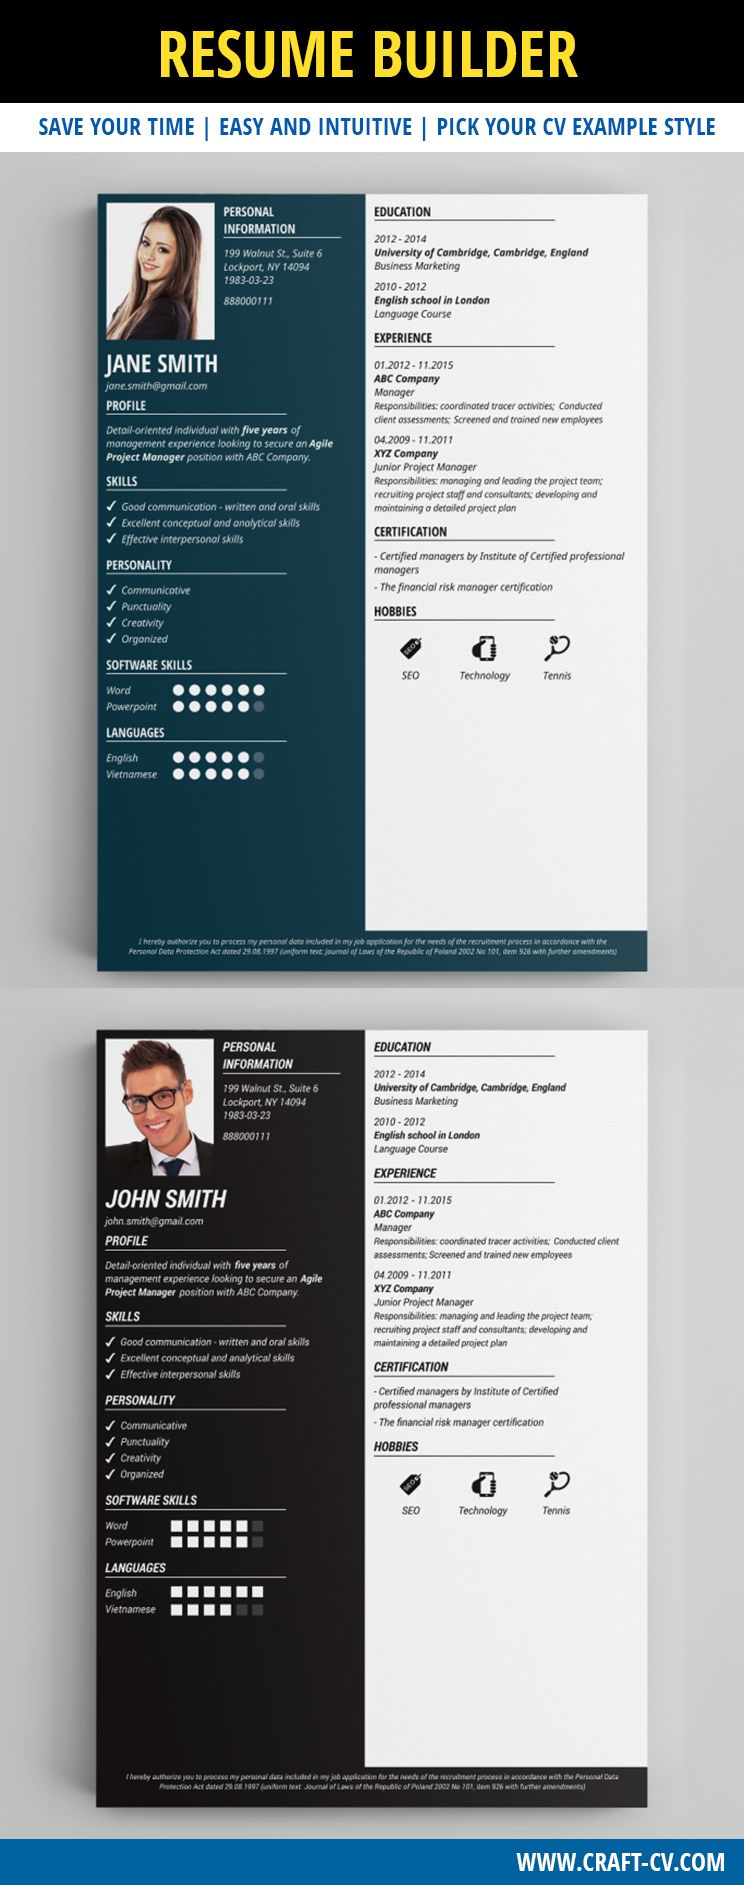 CV Sample [Download] Creative cv template, Resume